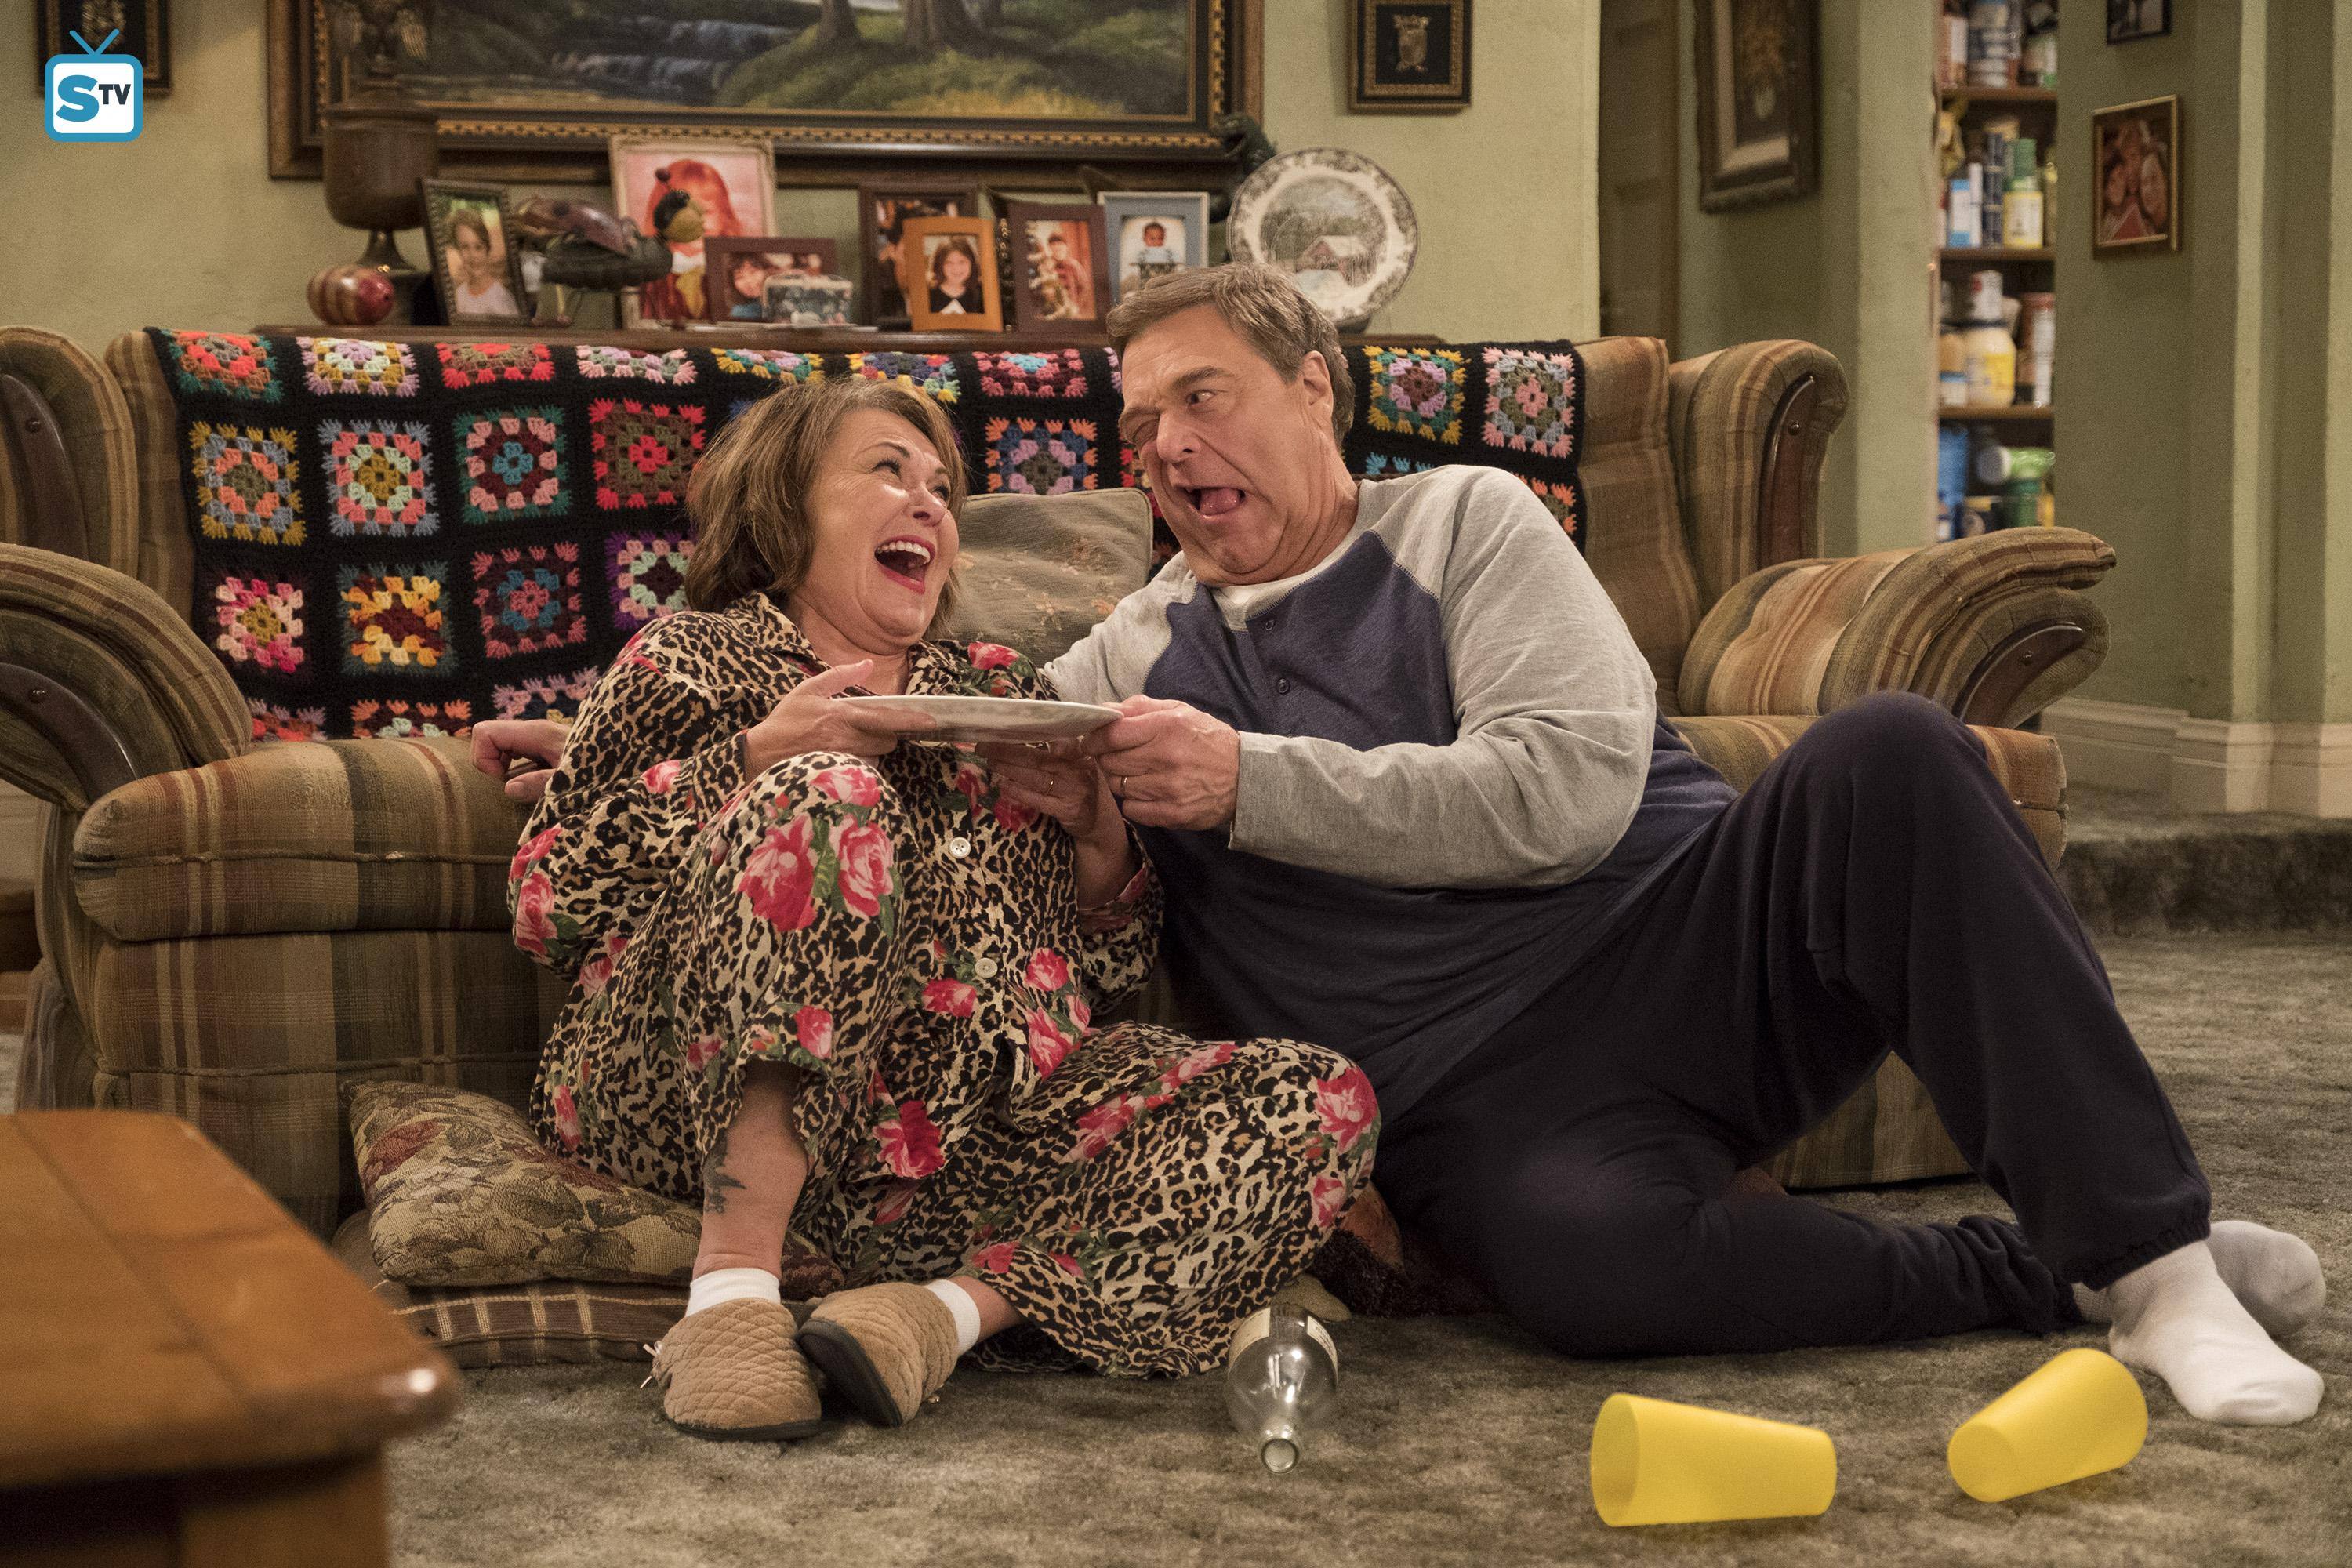 10x08 - Netflix and Pill - Dan and Roseanne